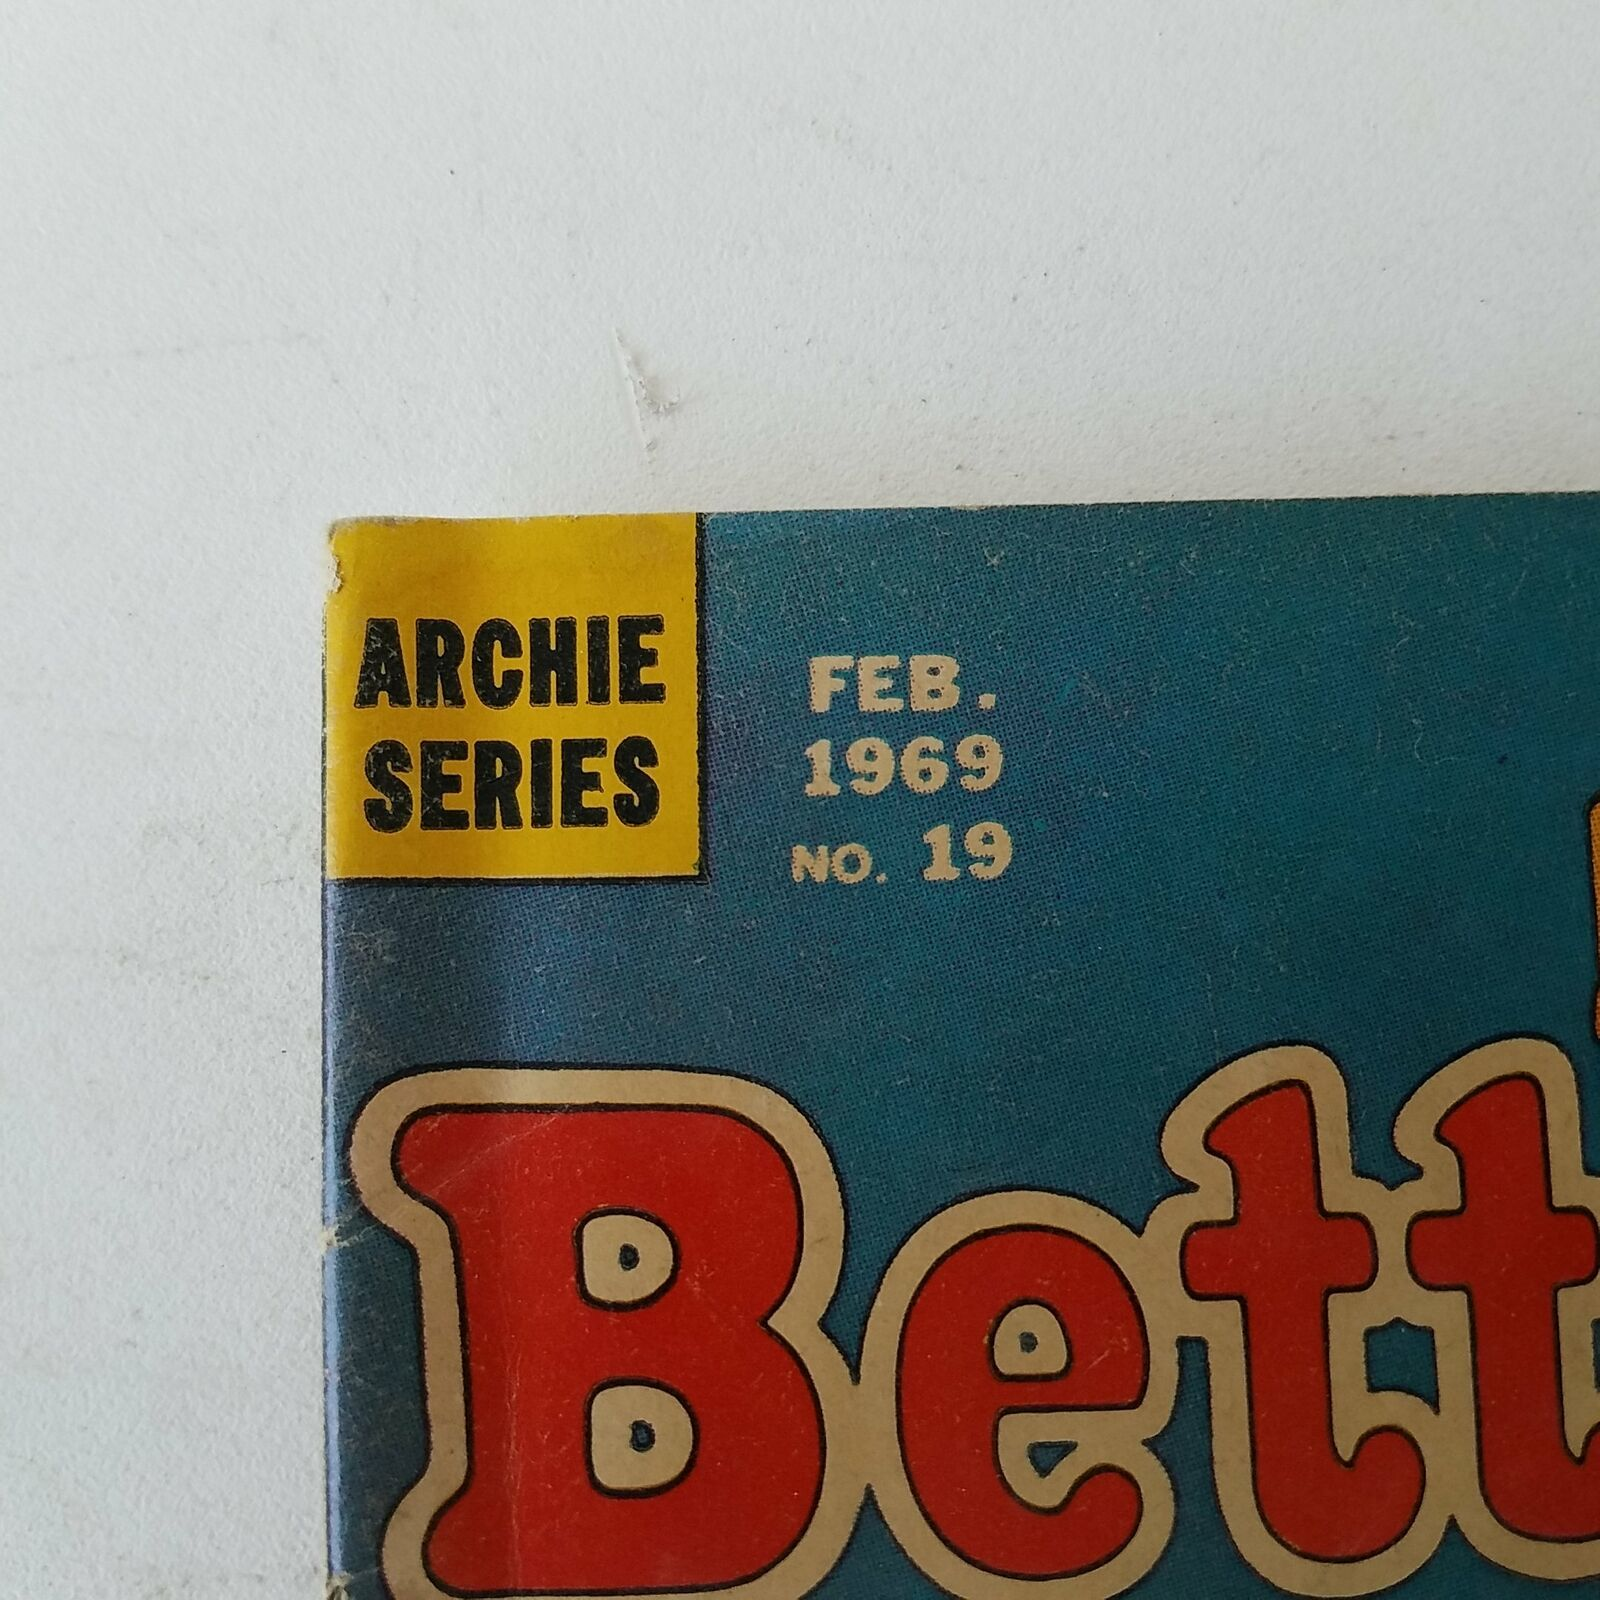 Archie Series - Betty And Me Feb. 1969 No. 19